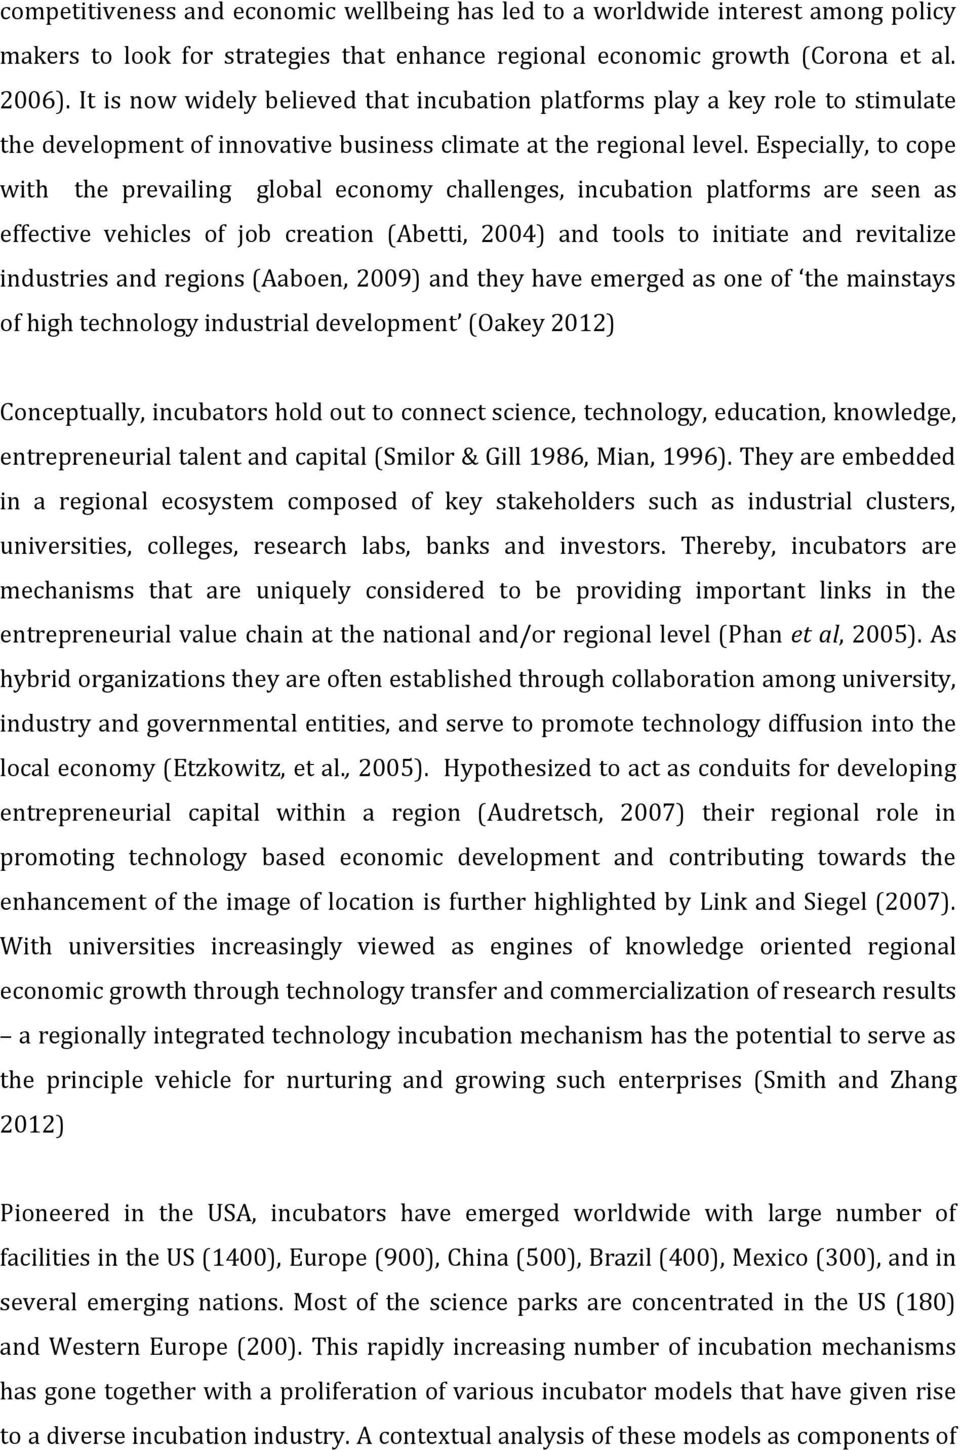 Especially, to cope with the prevailing global economy challenges, incubation platforms are seen as effective vehicles of job creation (Abetti, 2004) and tools to initiate and revitalize industries